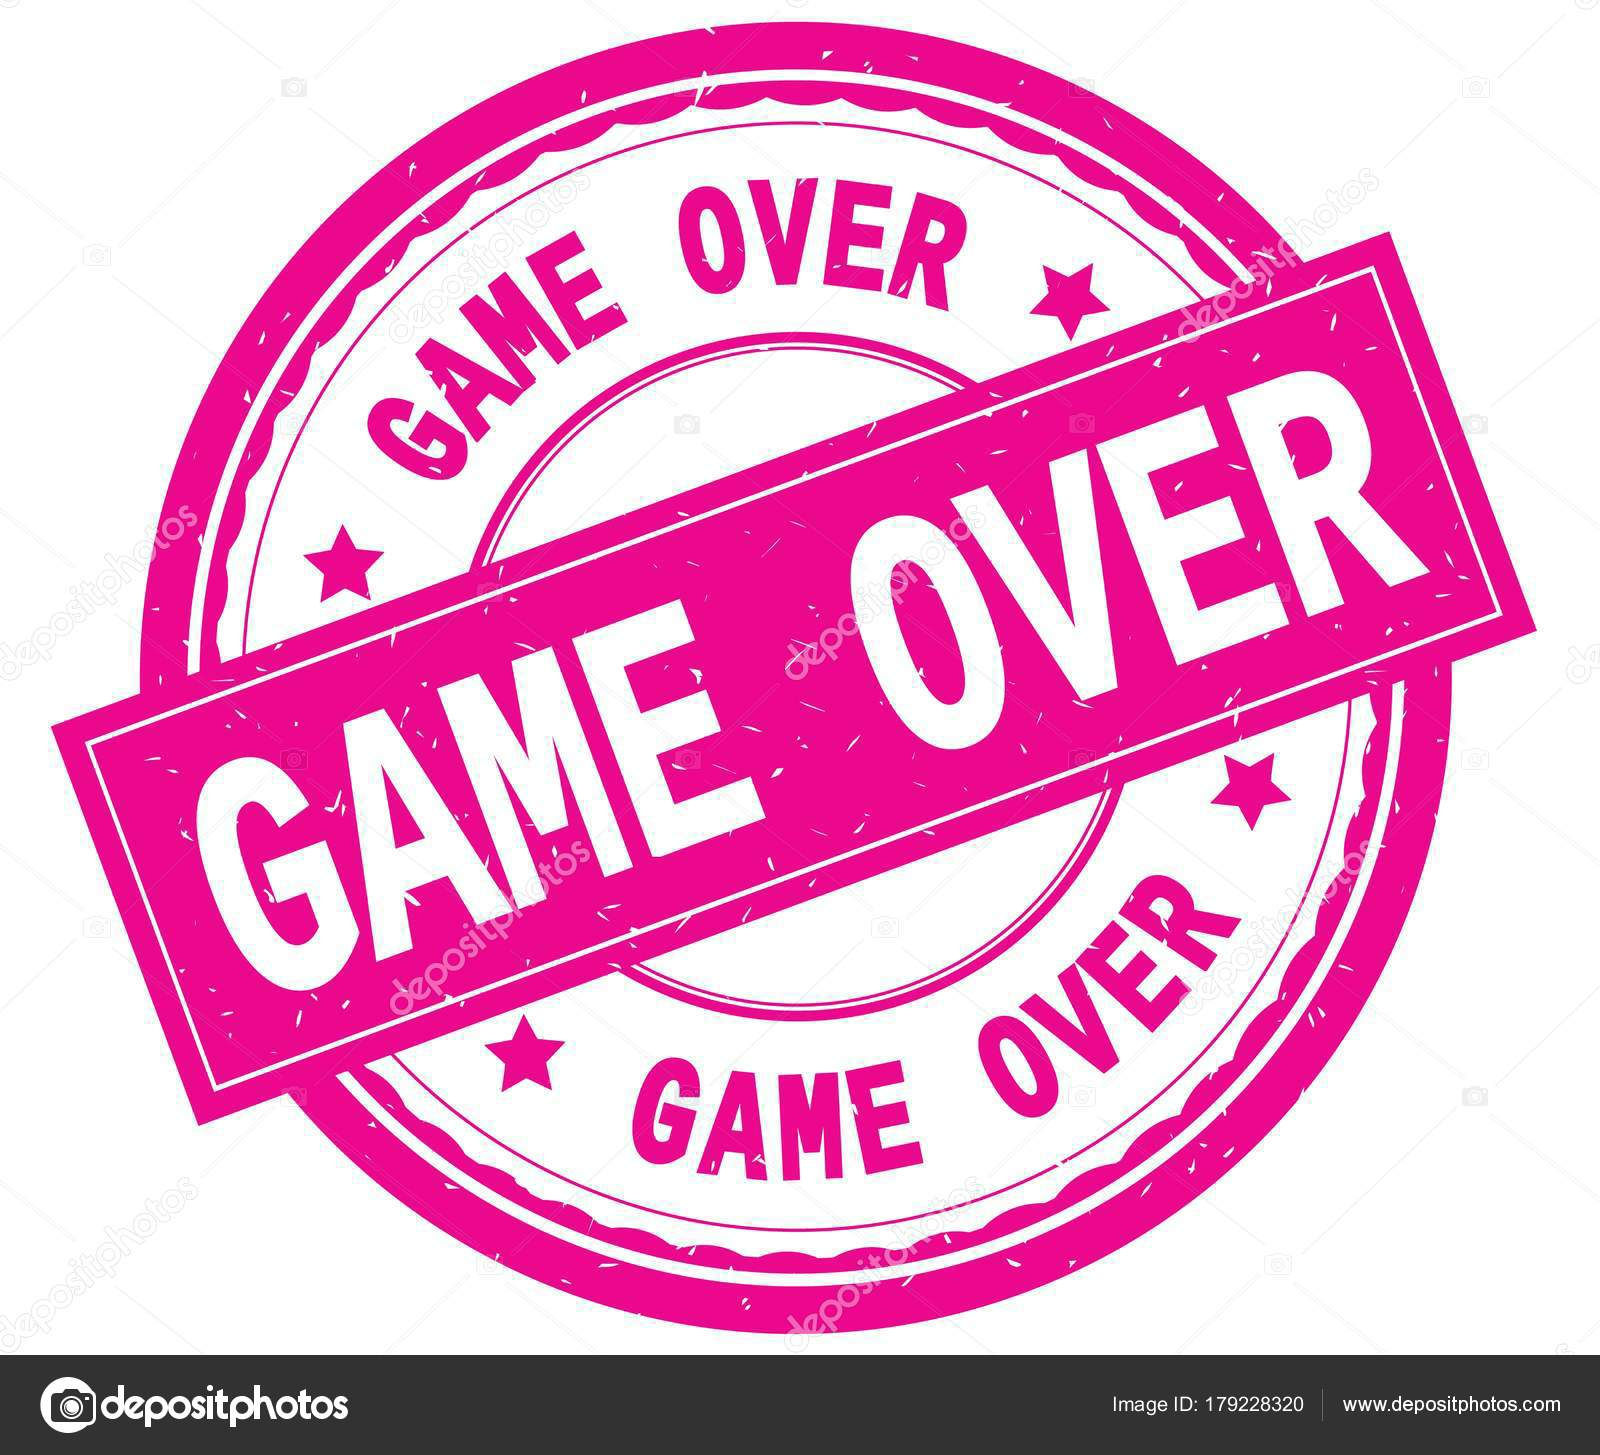 game over written text on pink round rubber stamp stock photo